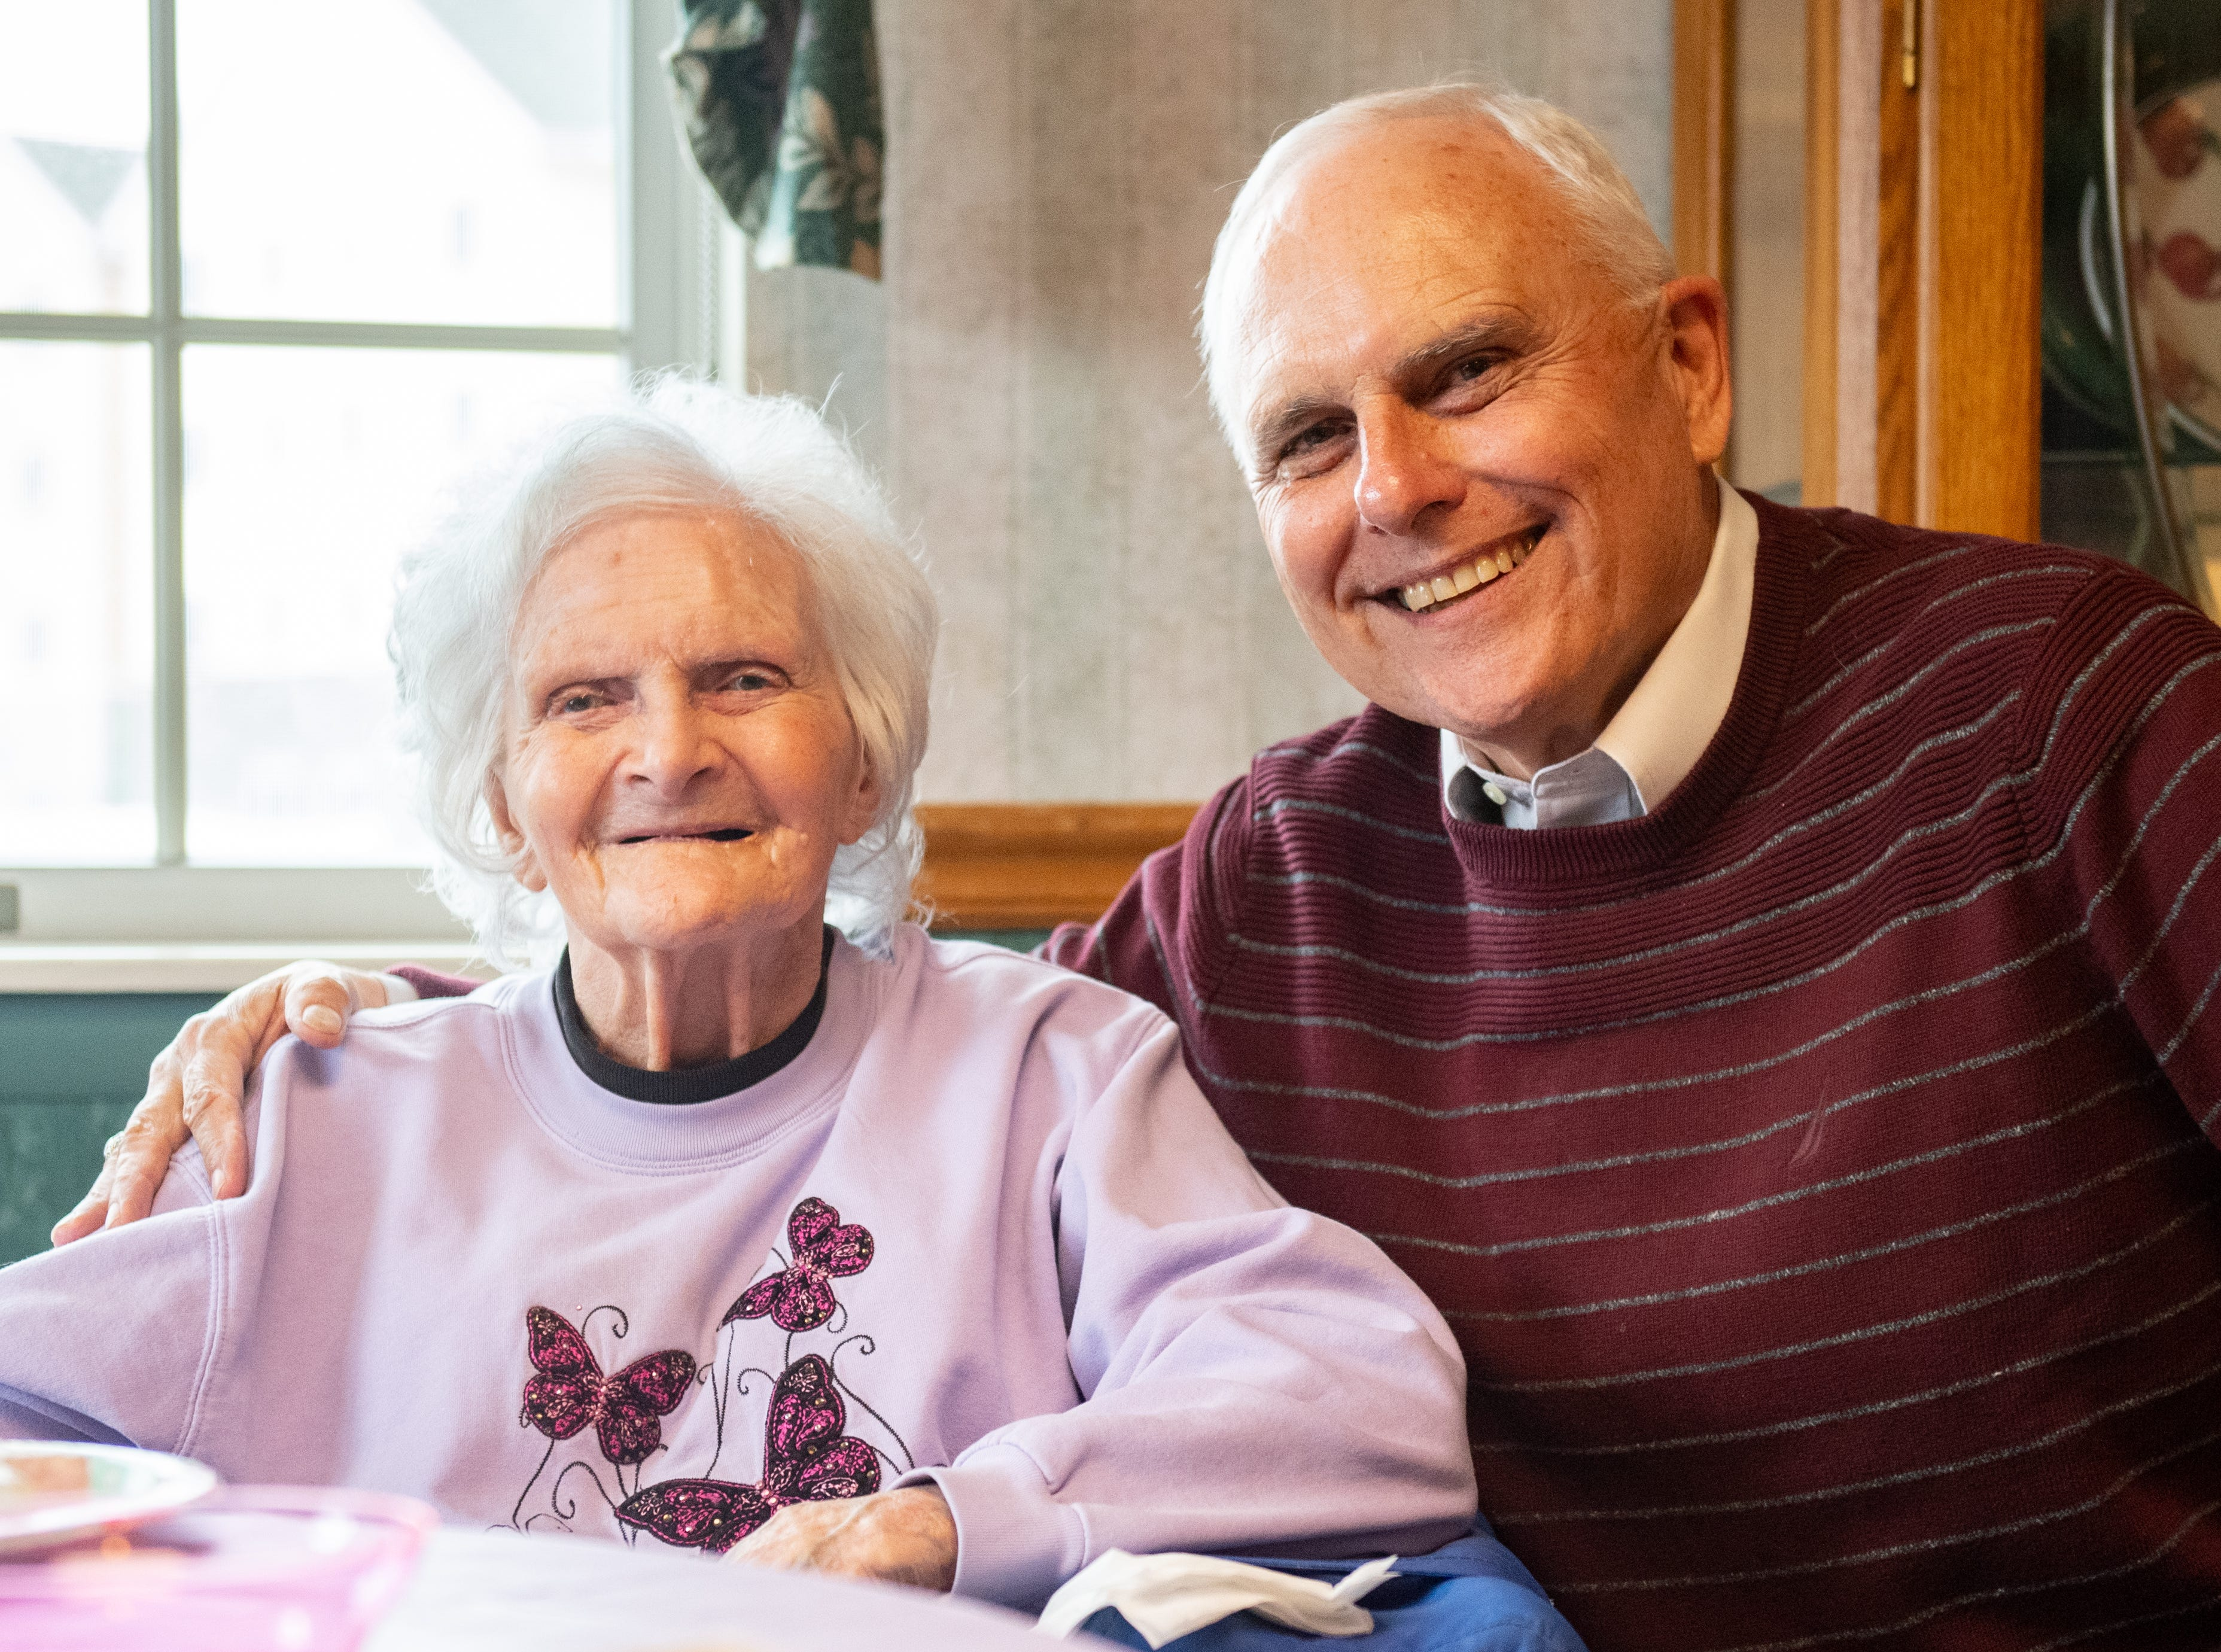 On April 5, 2019, Ann Diehl, 94, celebrated her 73rd wedding anniversary at ManorCare and Heartland Hospice. She sits next to her son, Tom Diehl.